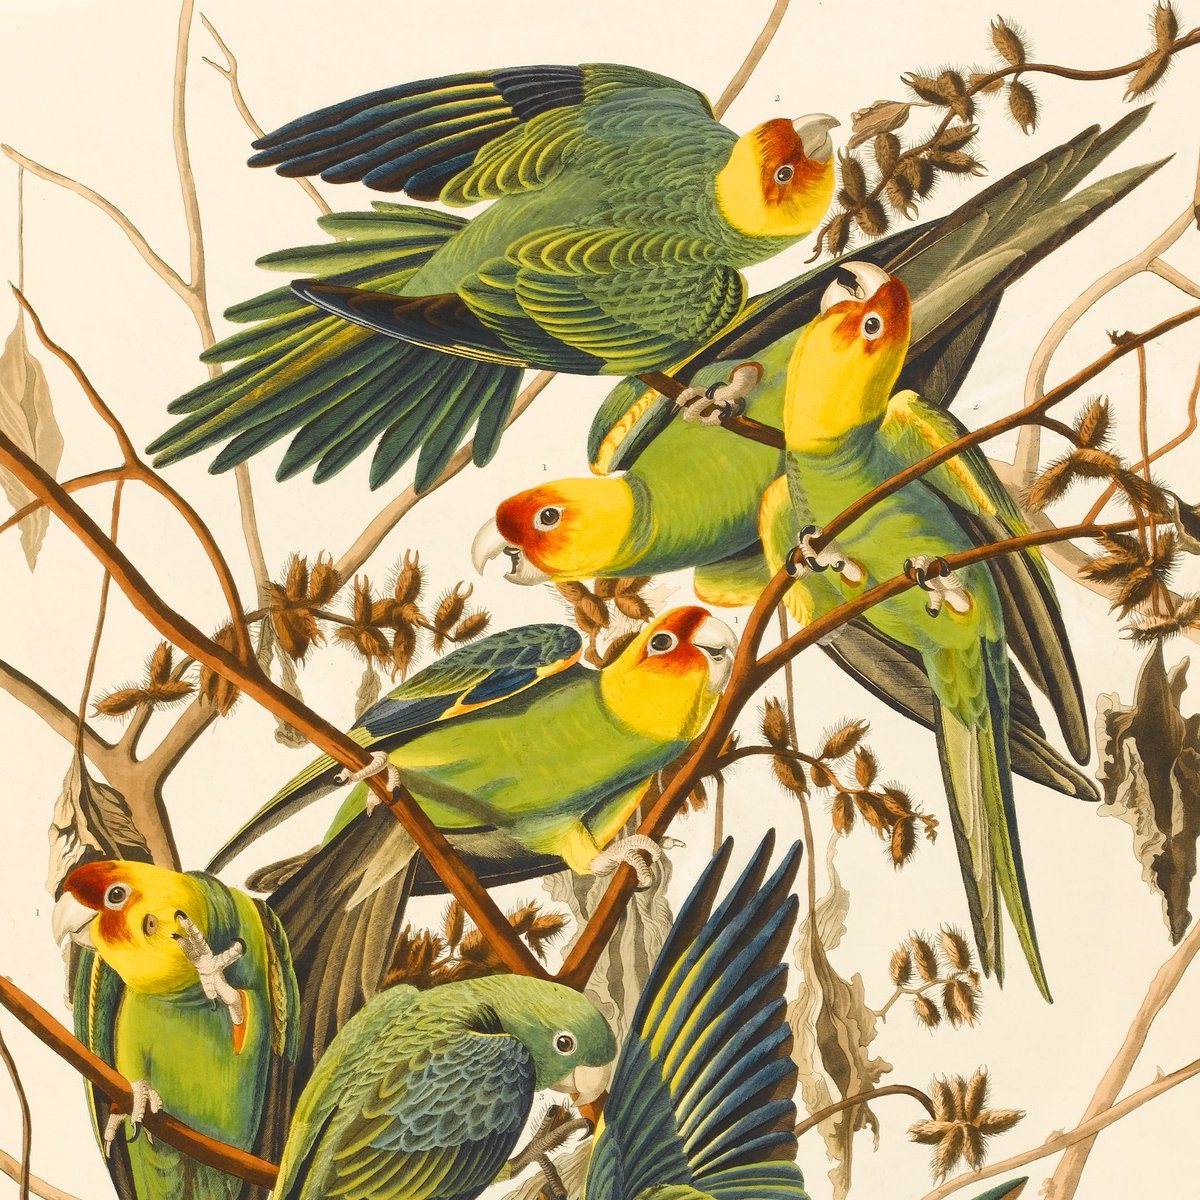 #WorldEnvironmentDay2020 #biodiversity   John James Audubon's Birds of America (1826-1838) is the rarest & finest ornithological work ever published. Its 435 hand-coloured plates depict 495 species, 25 of which Audubon discovered himself.   Carolina parrots & cocklebur.pic.twitter.com/qFME4SQcM7